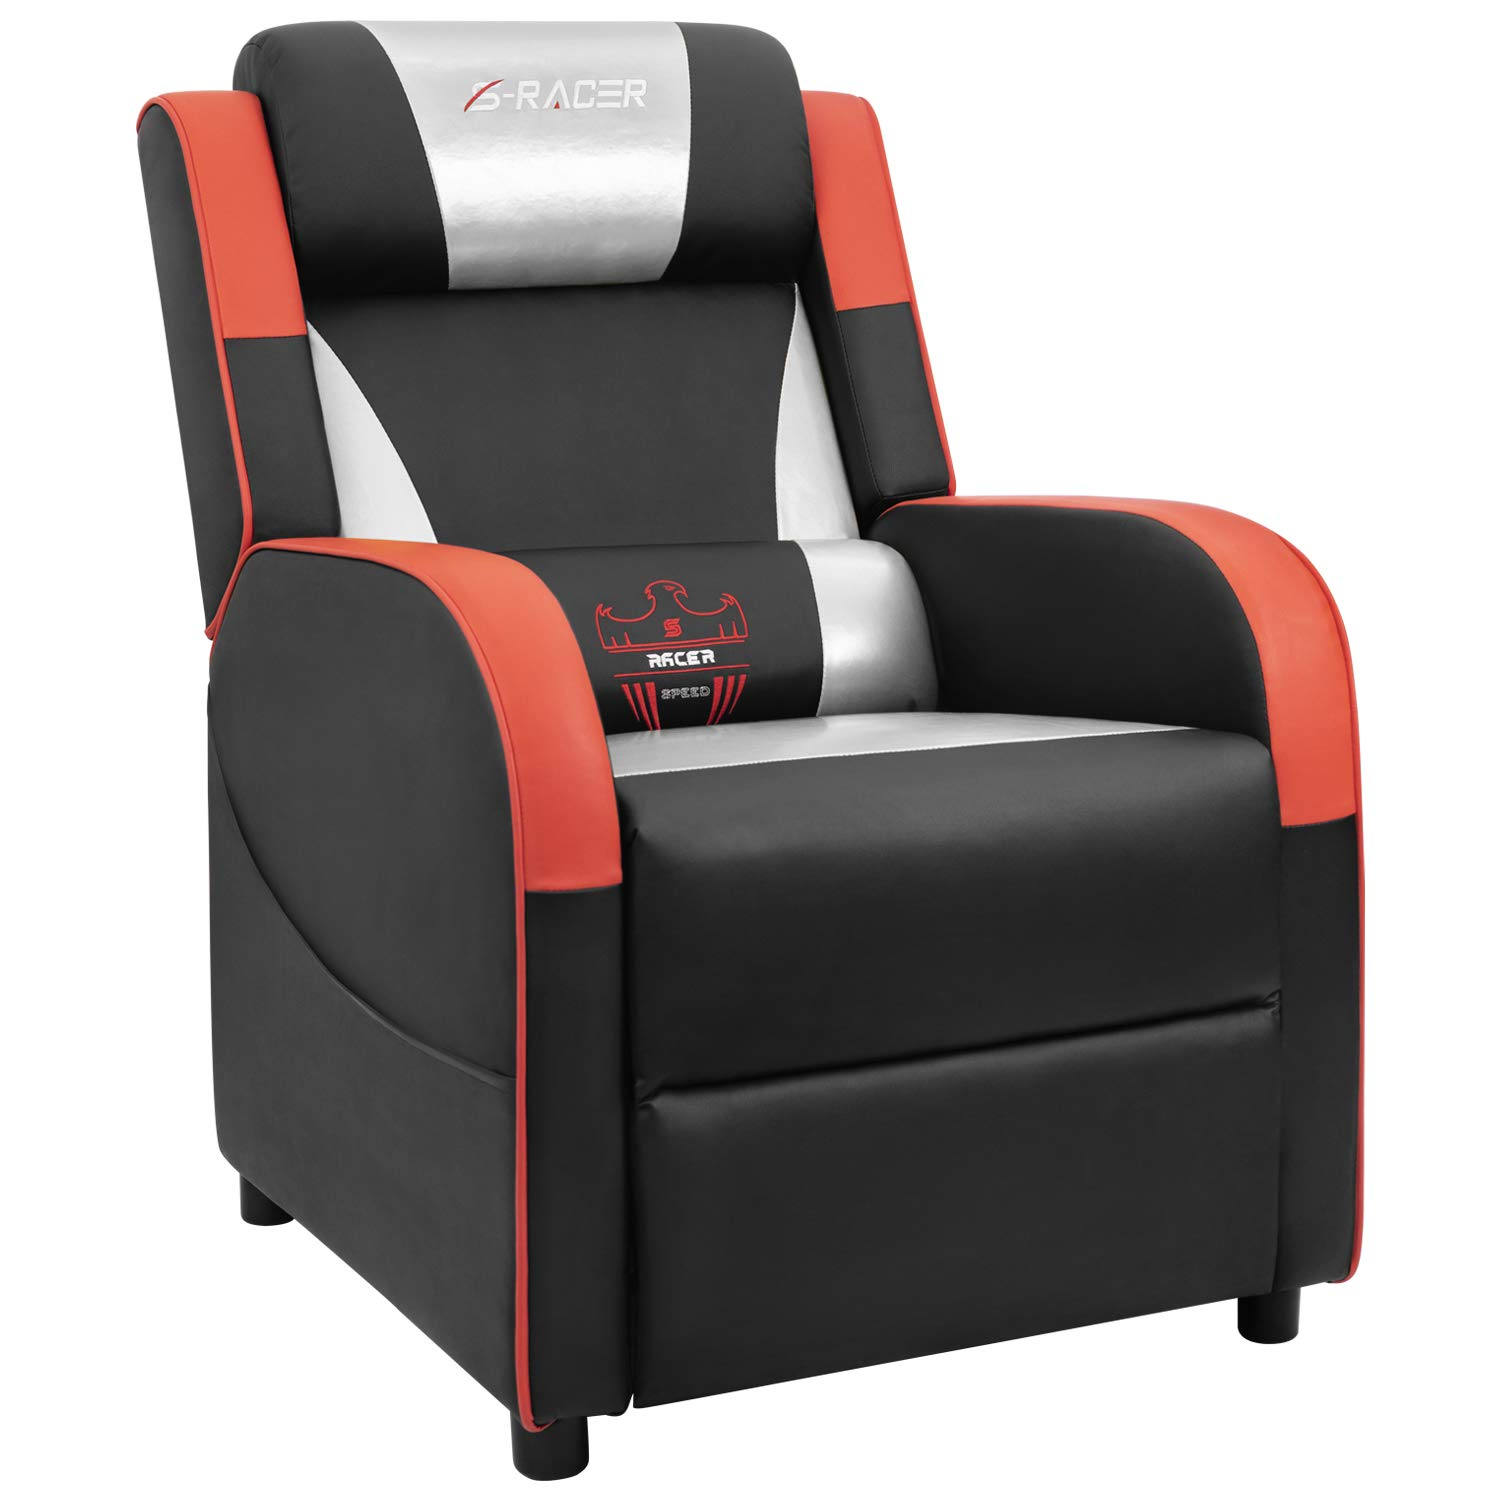 Room Gaming Living Sracer Recliner Homall Leather Seat Seatingsilvery Home Sofa Pu Chair Single Theater TlJK1Fc